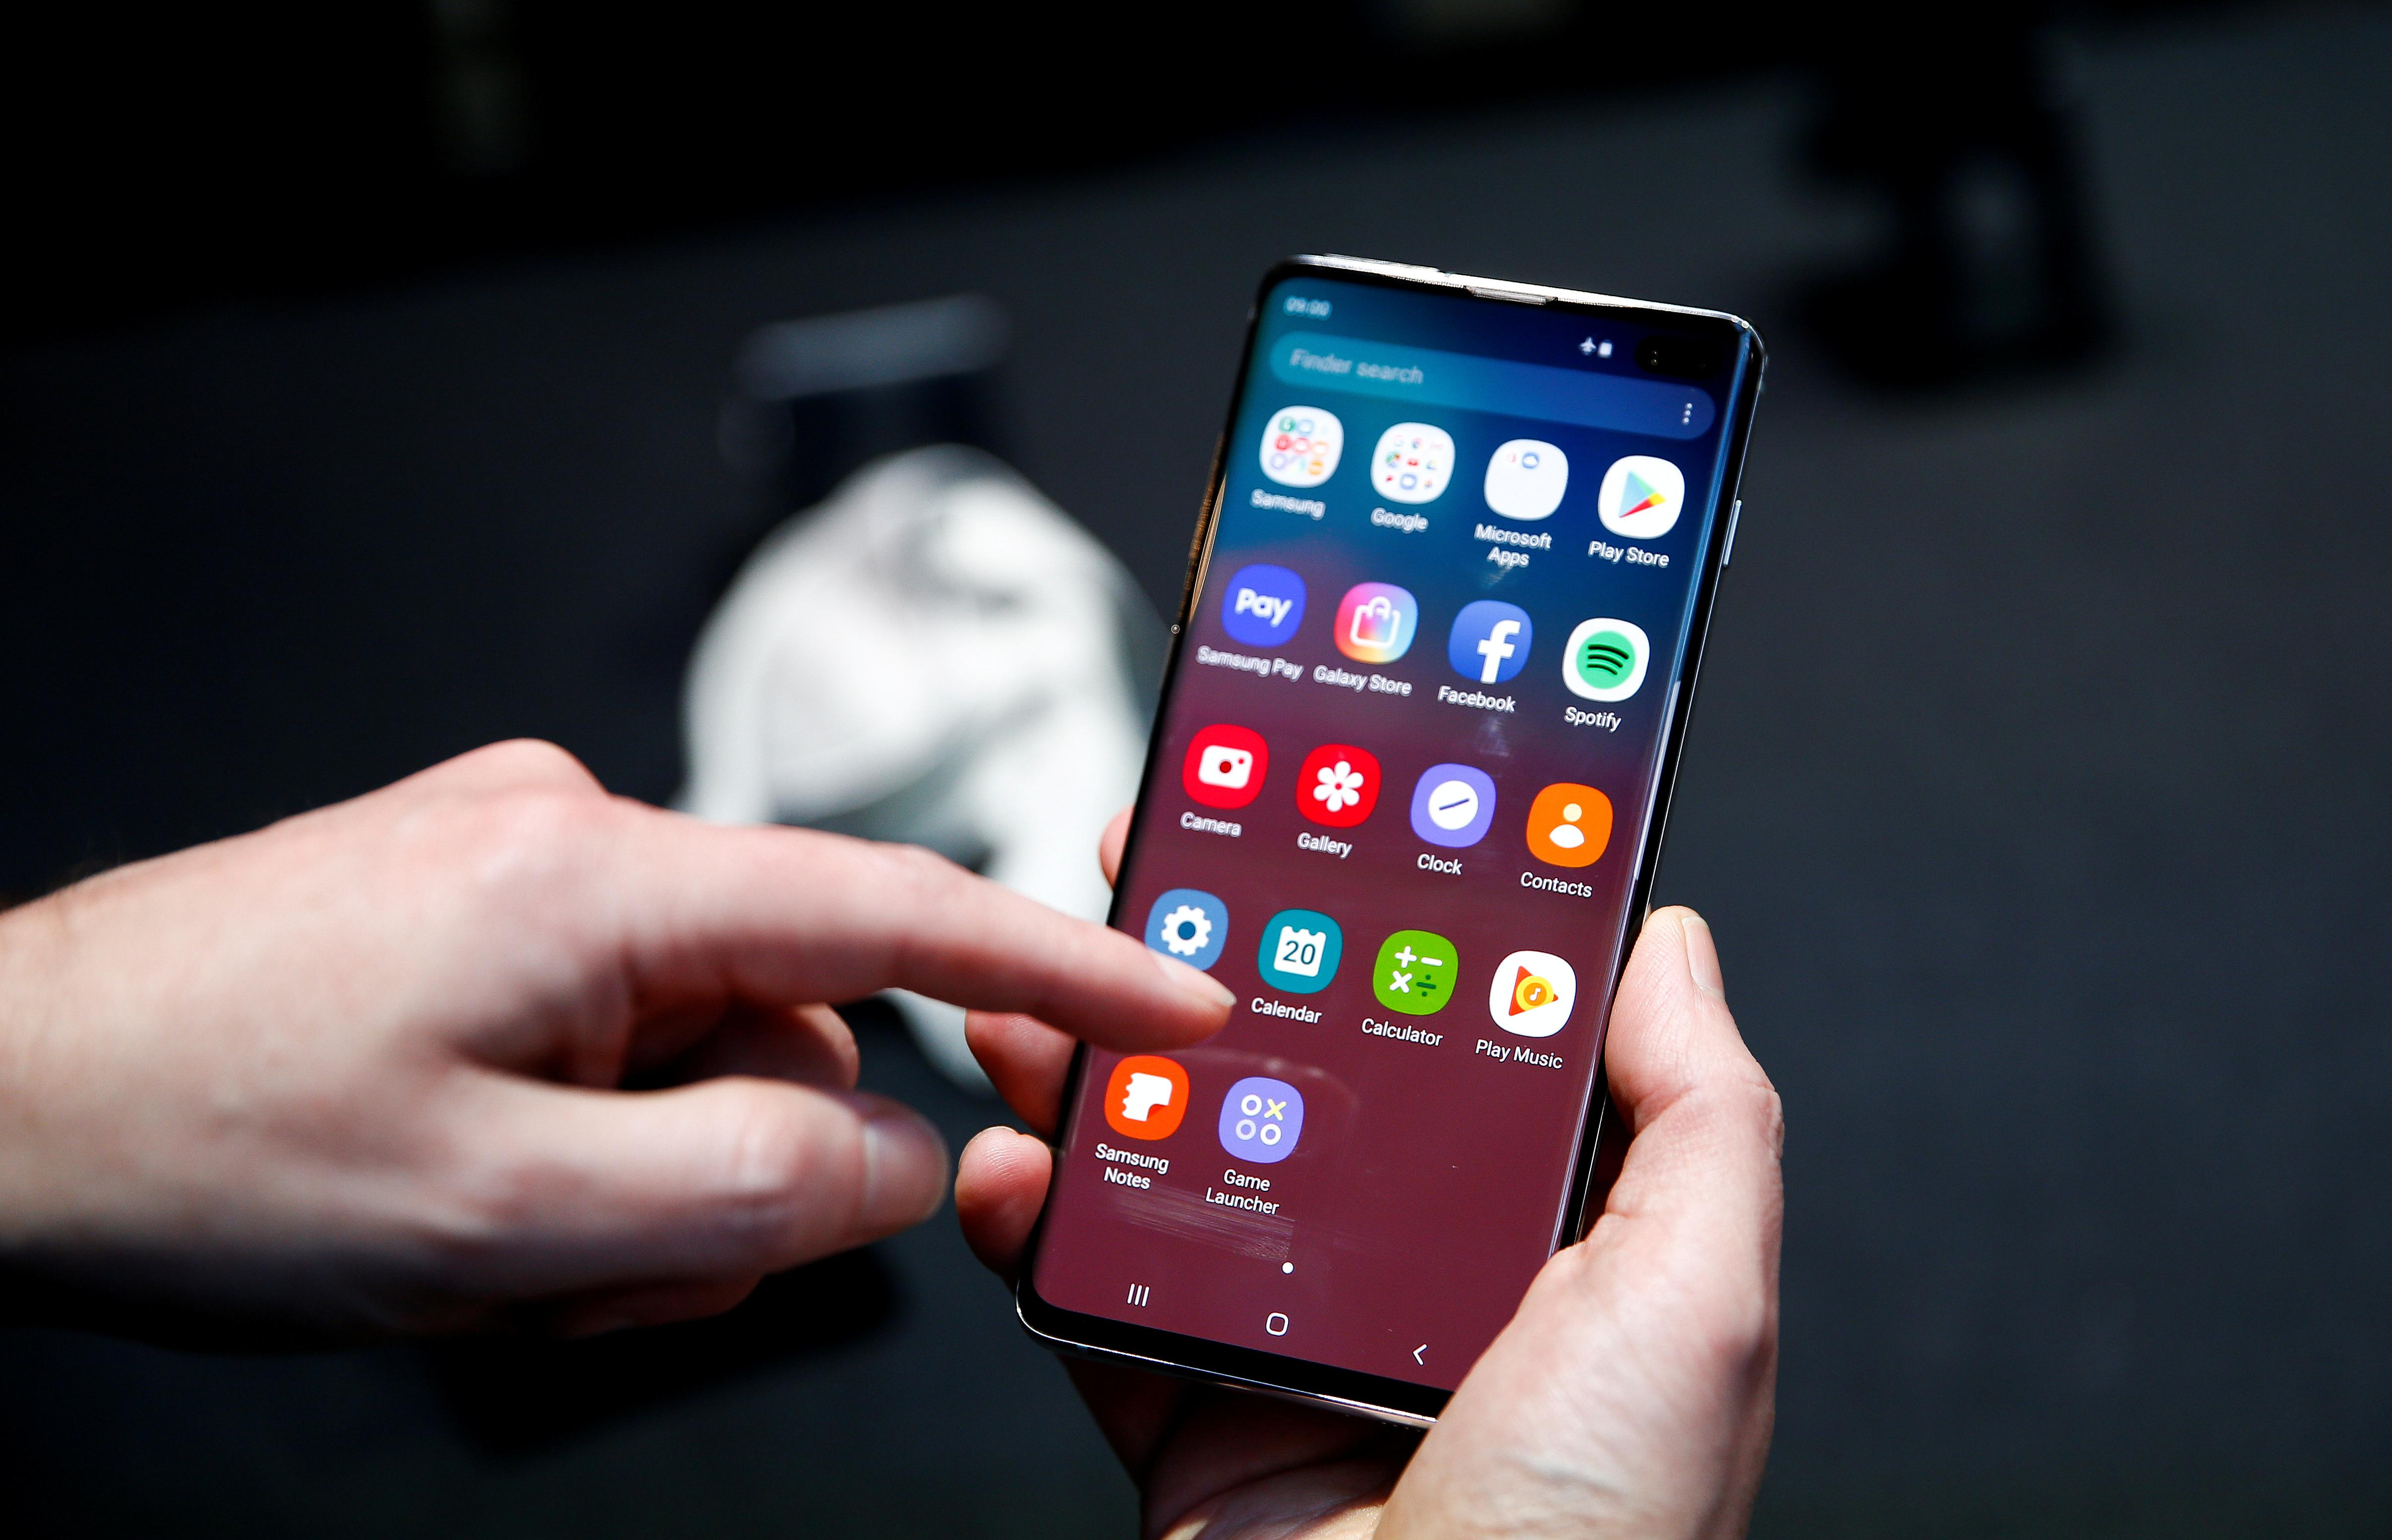 Samsung says will soon patch Galaxy S10 fingerprint recognition...